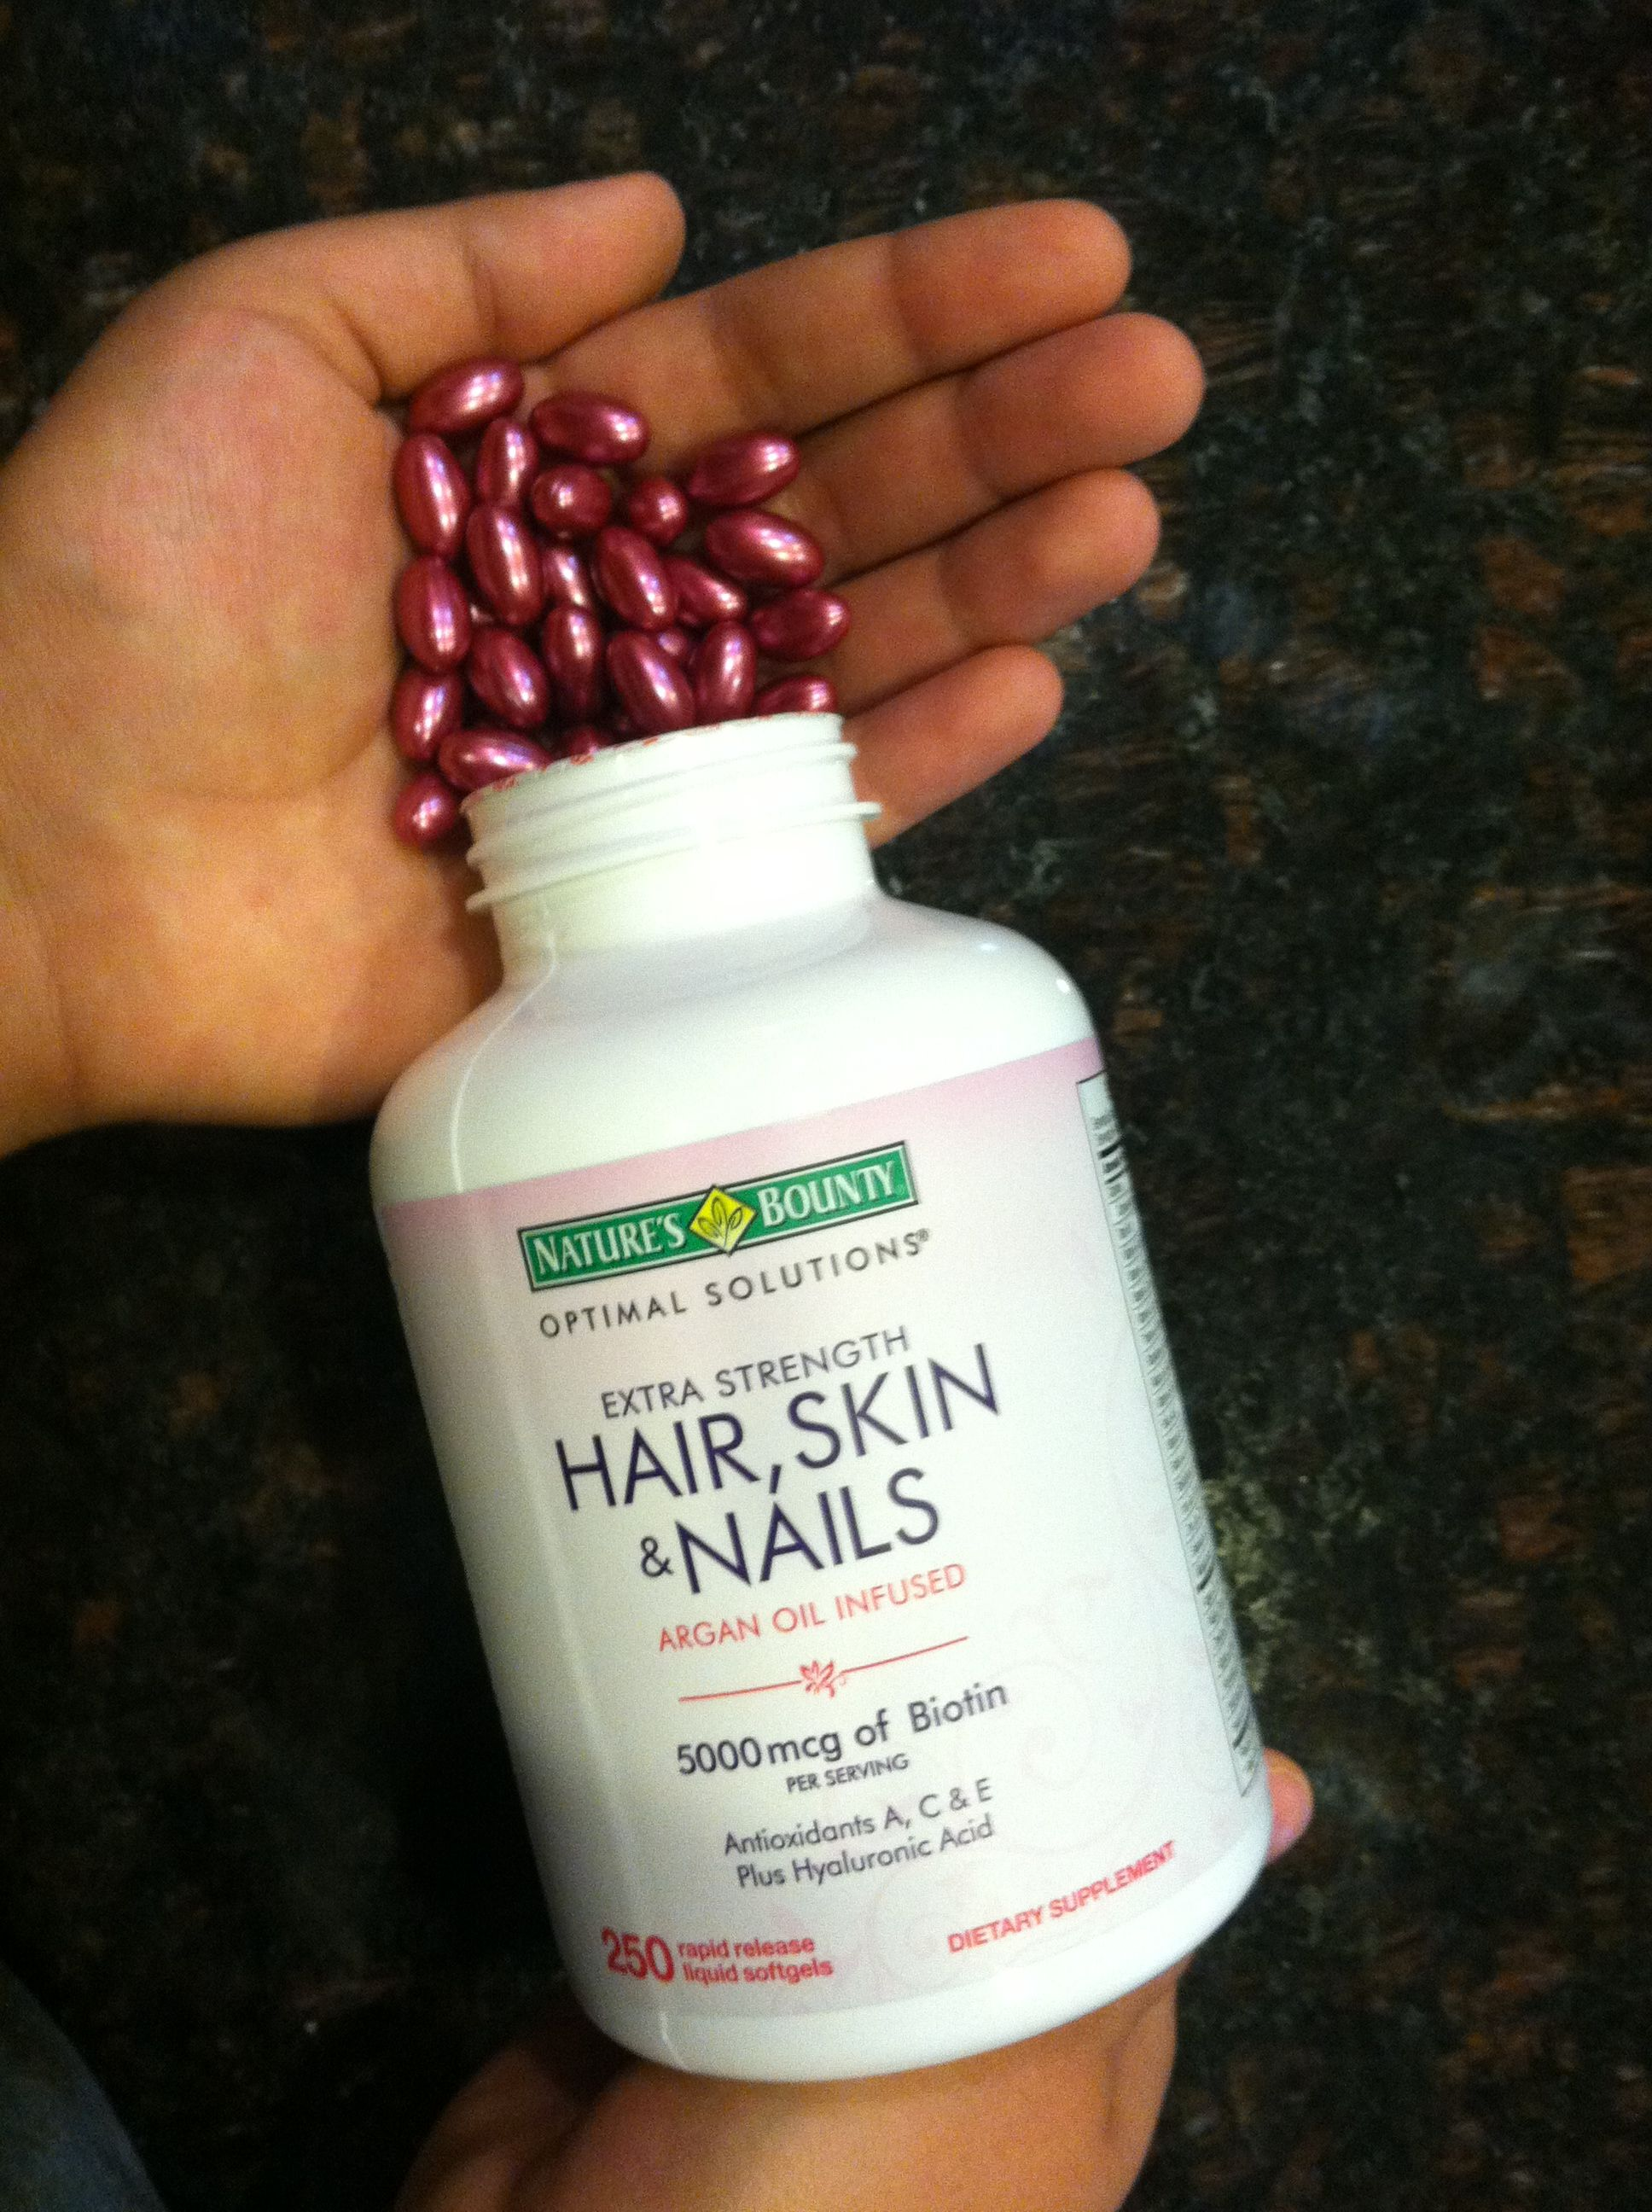 This Vitamin Strengthens Hair Skin And Nails And Works Great I Got These At Costco The Color Is Soooo Pretty Hair Vitamins Hair Skin Nails Beauty Skin Care